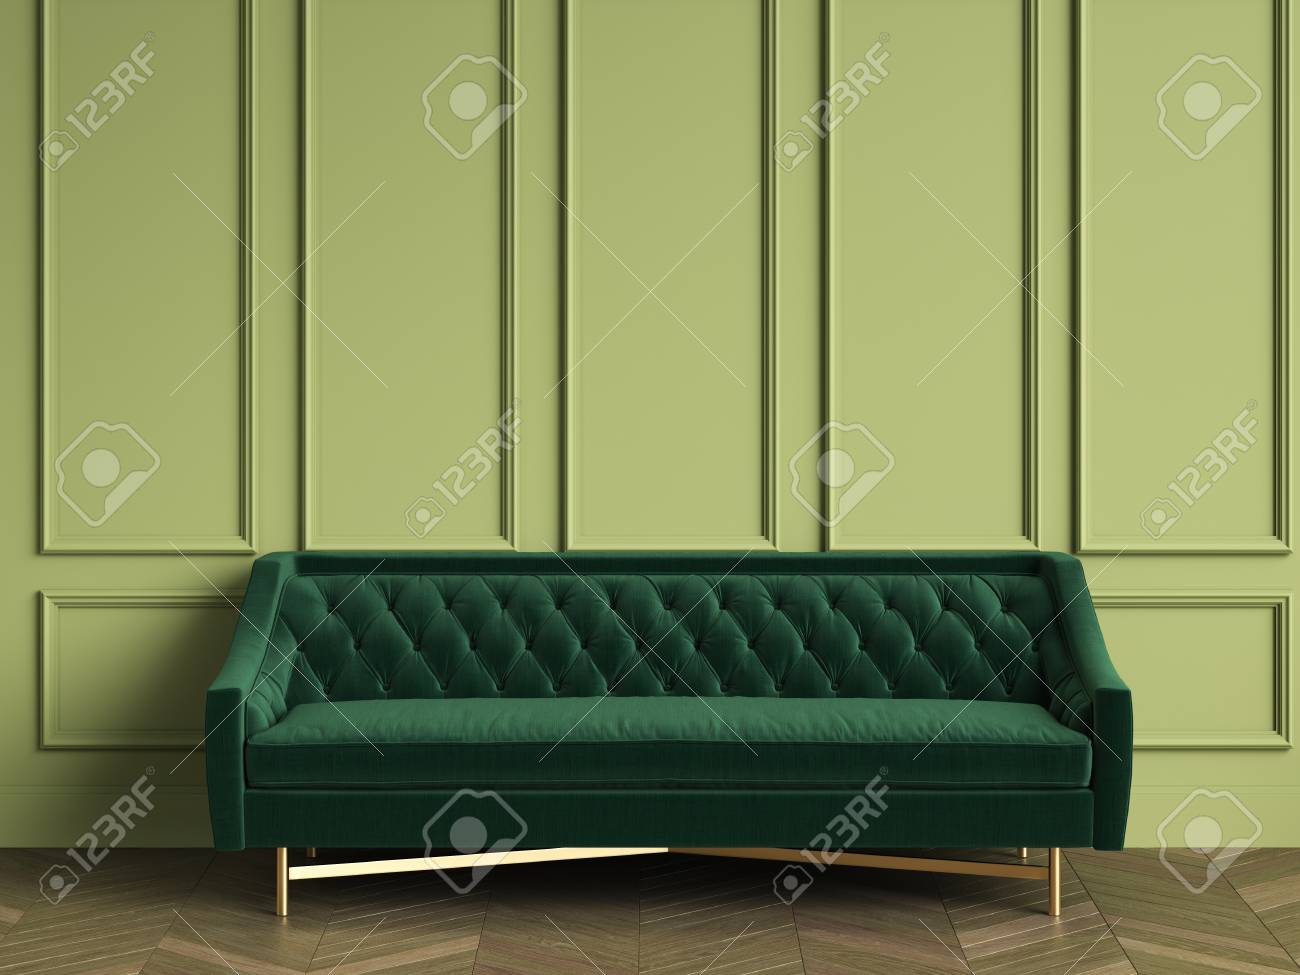 Tufted Dark Green Sofa In Classic Interior With Copy Space.Green ...